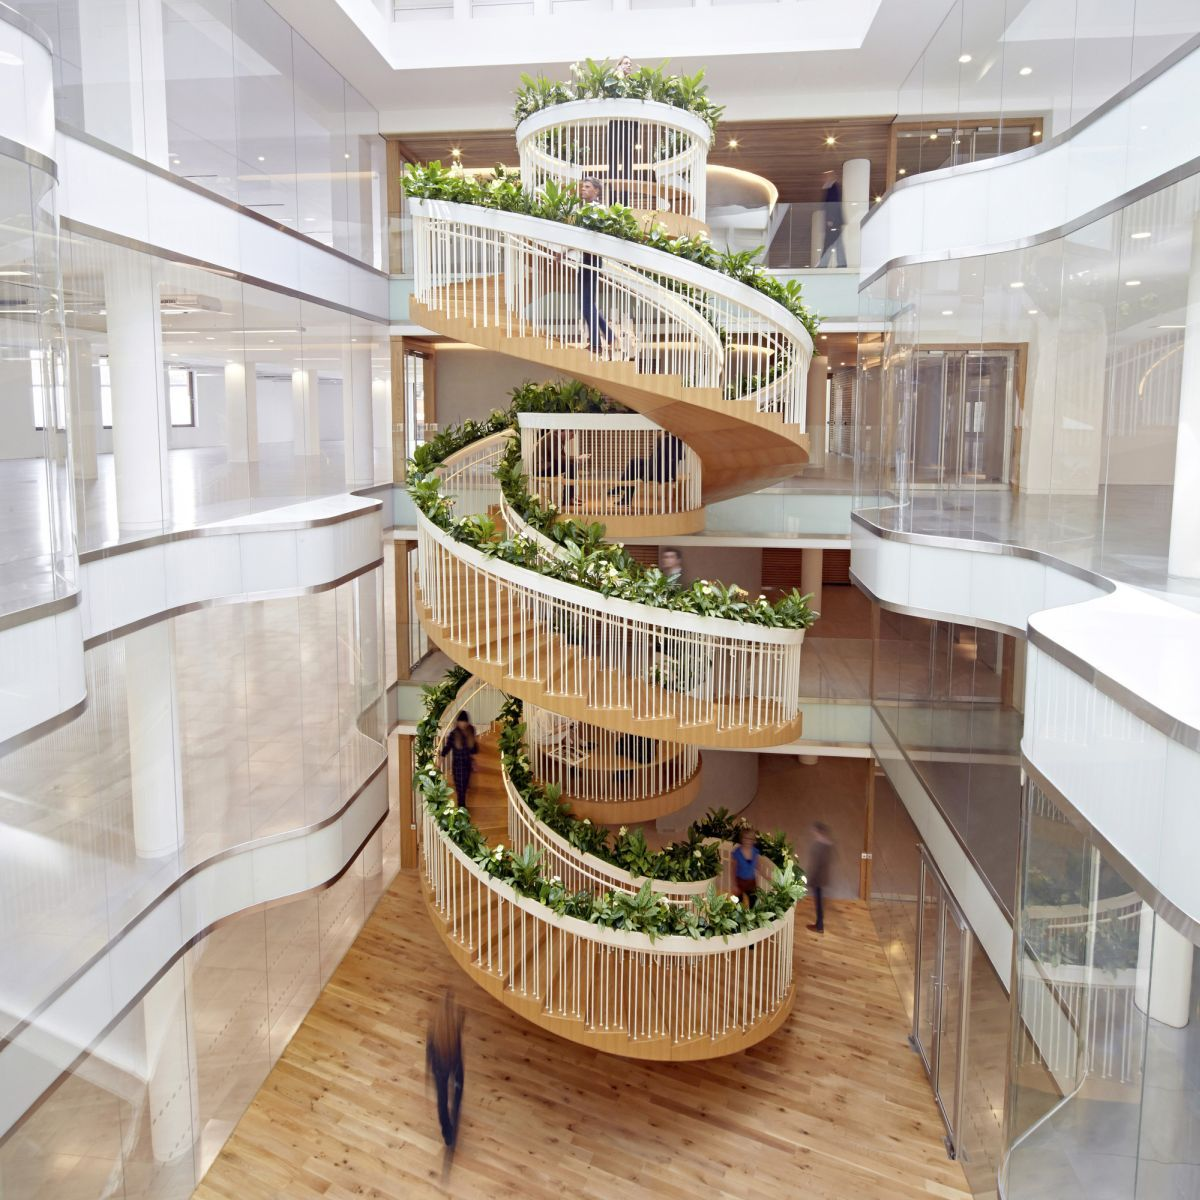 20 Of The Most Beautiful Spiral Staircase Designs Ever Modern